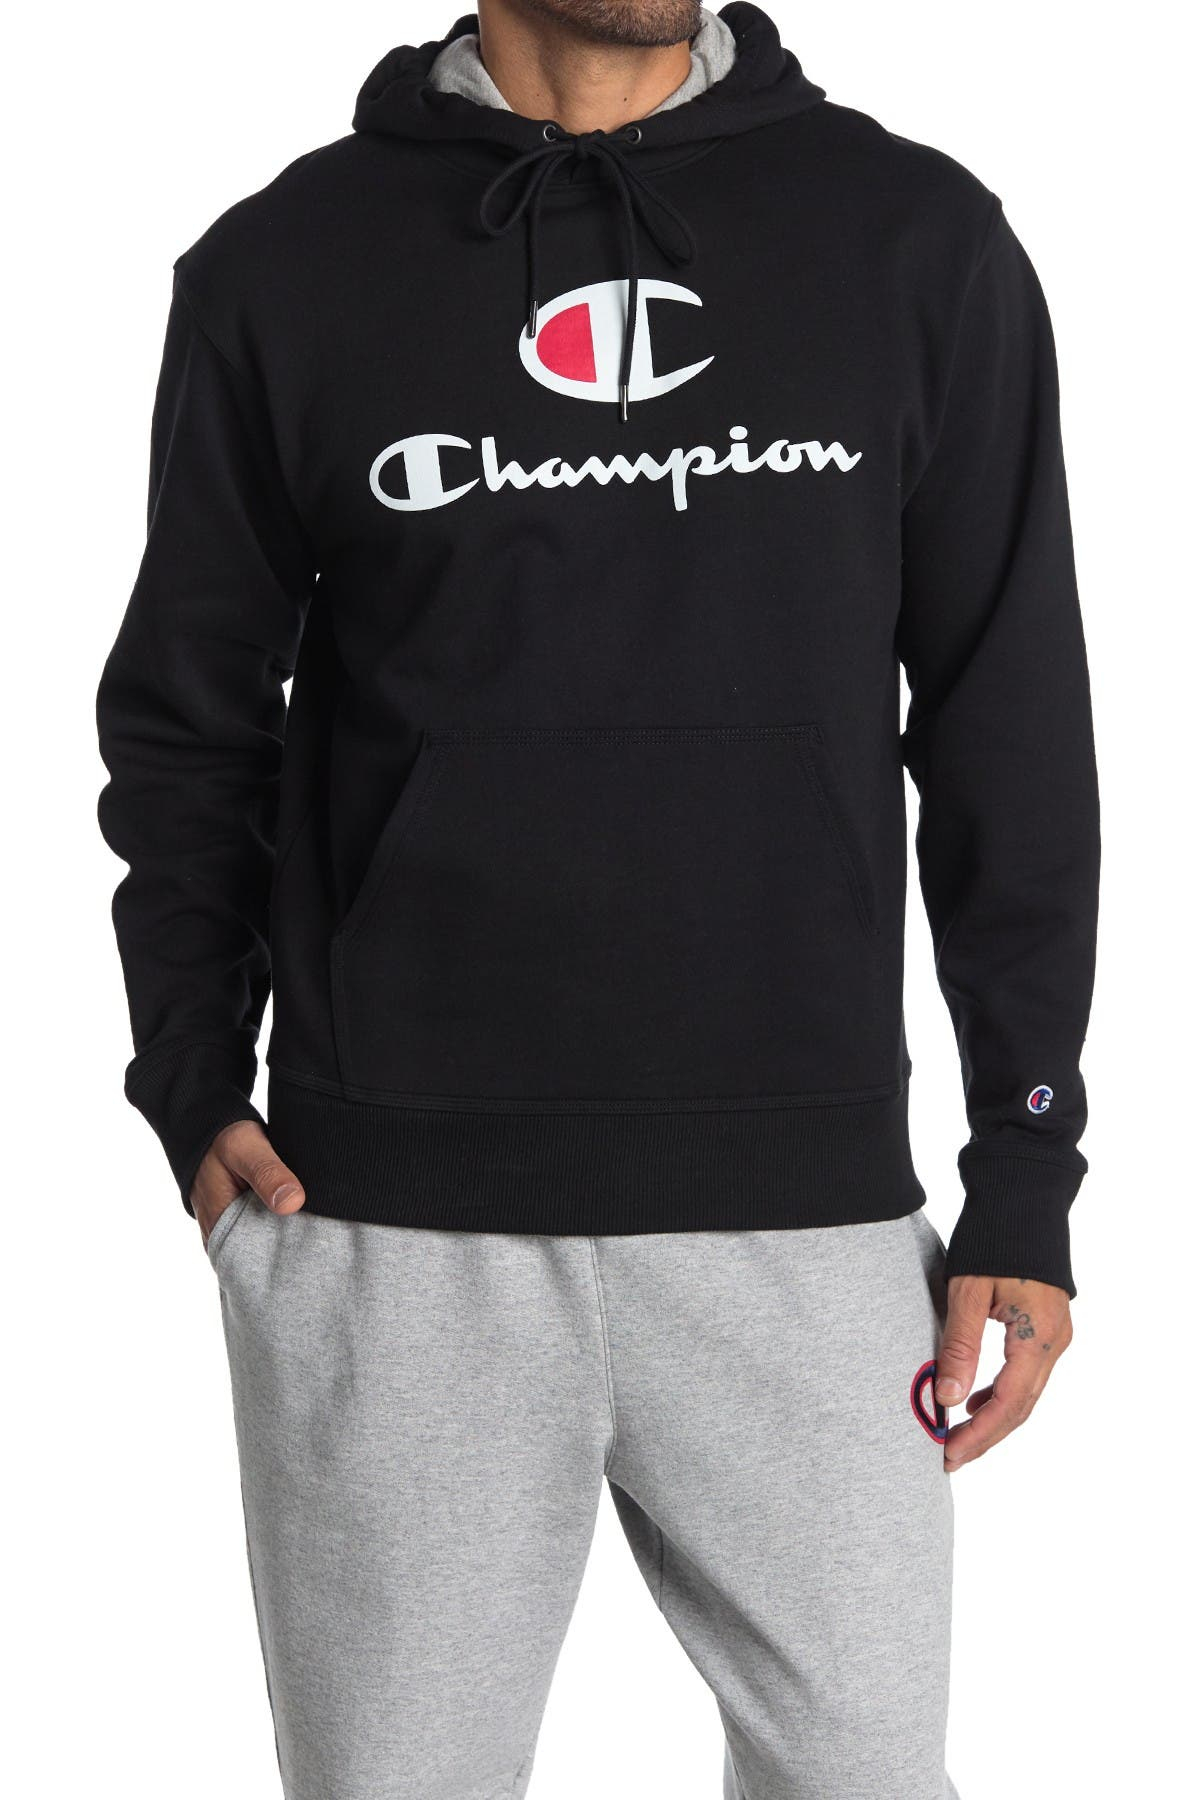 Image of Champion Powerblend Screenprint Hoodie